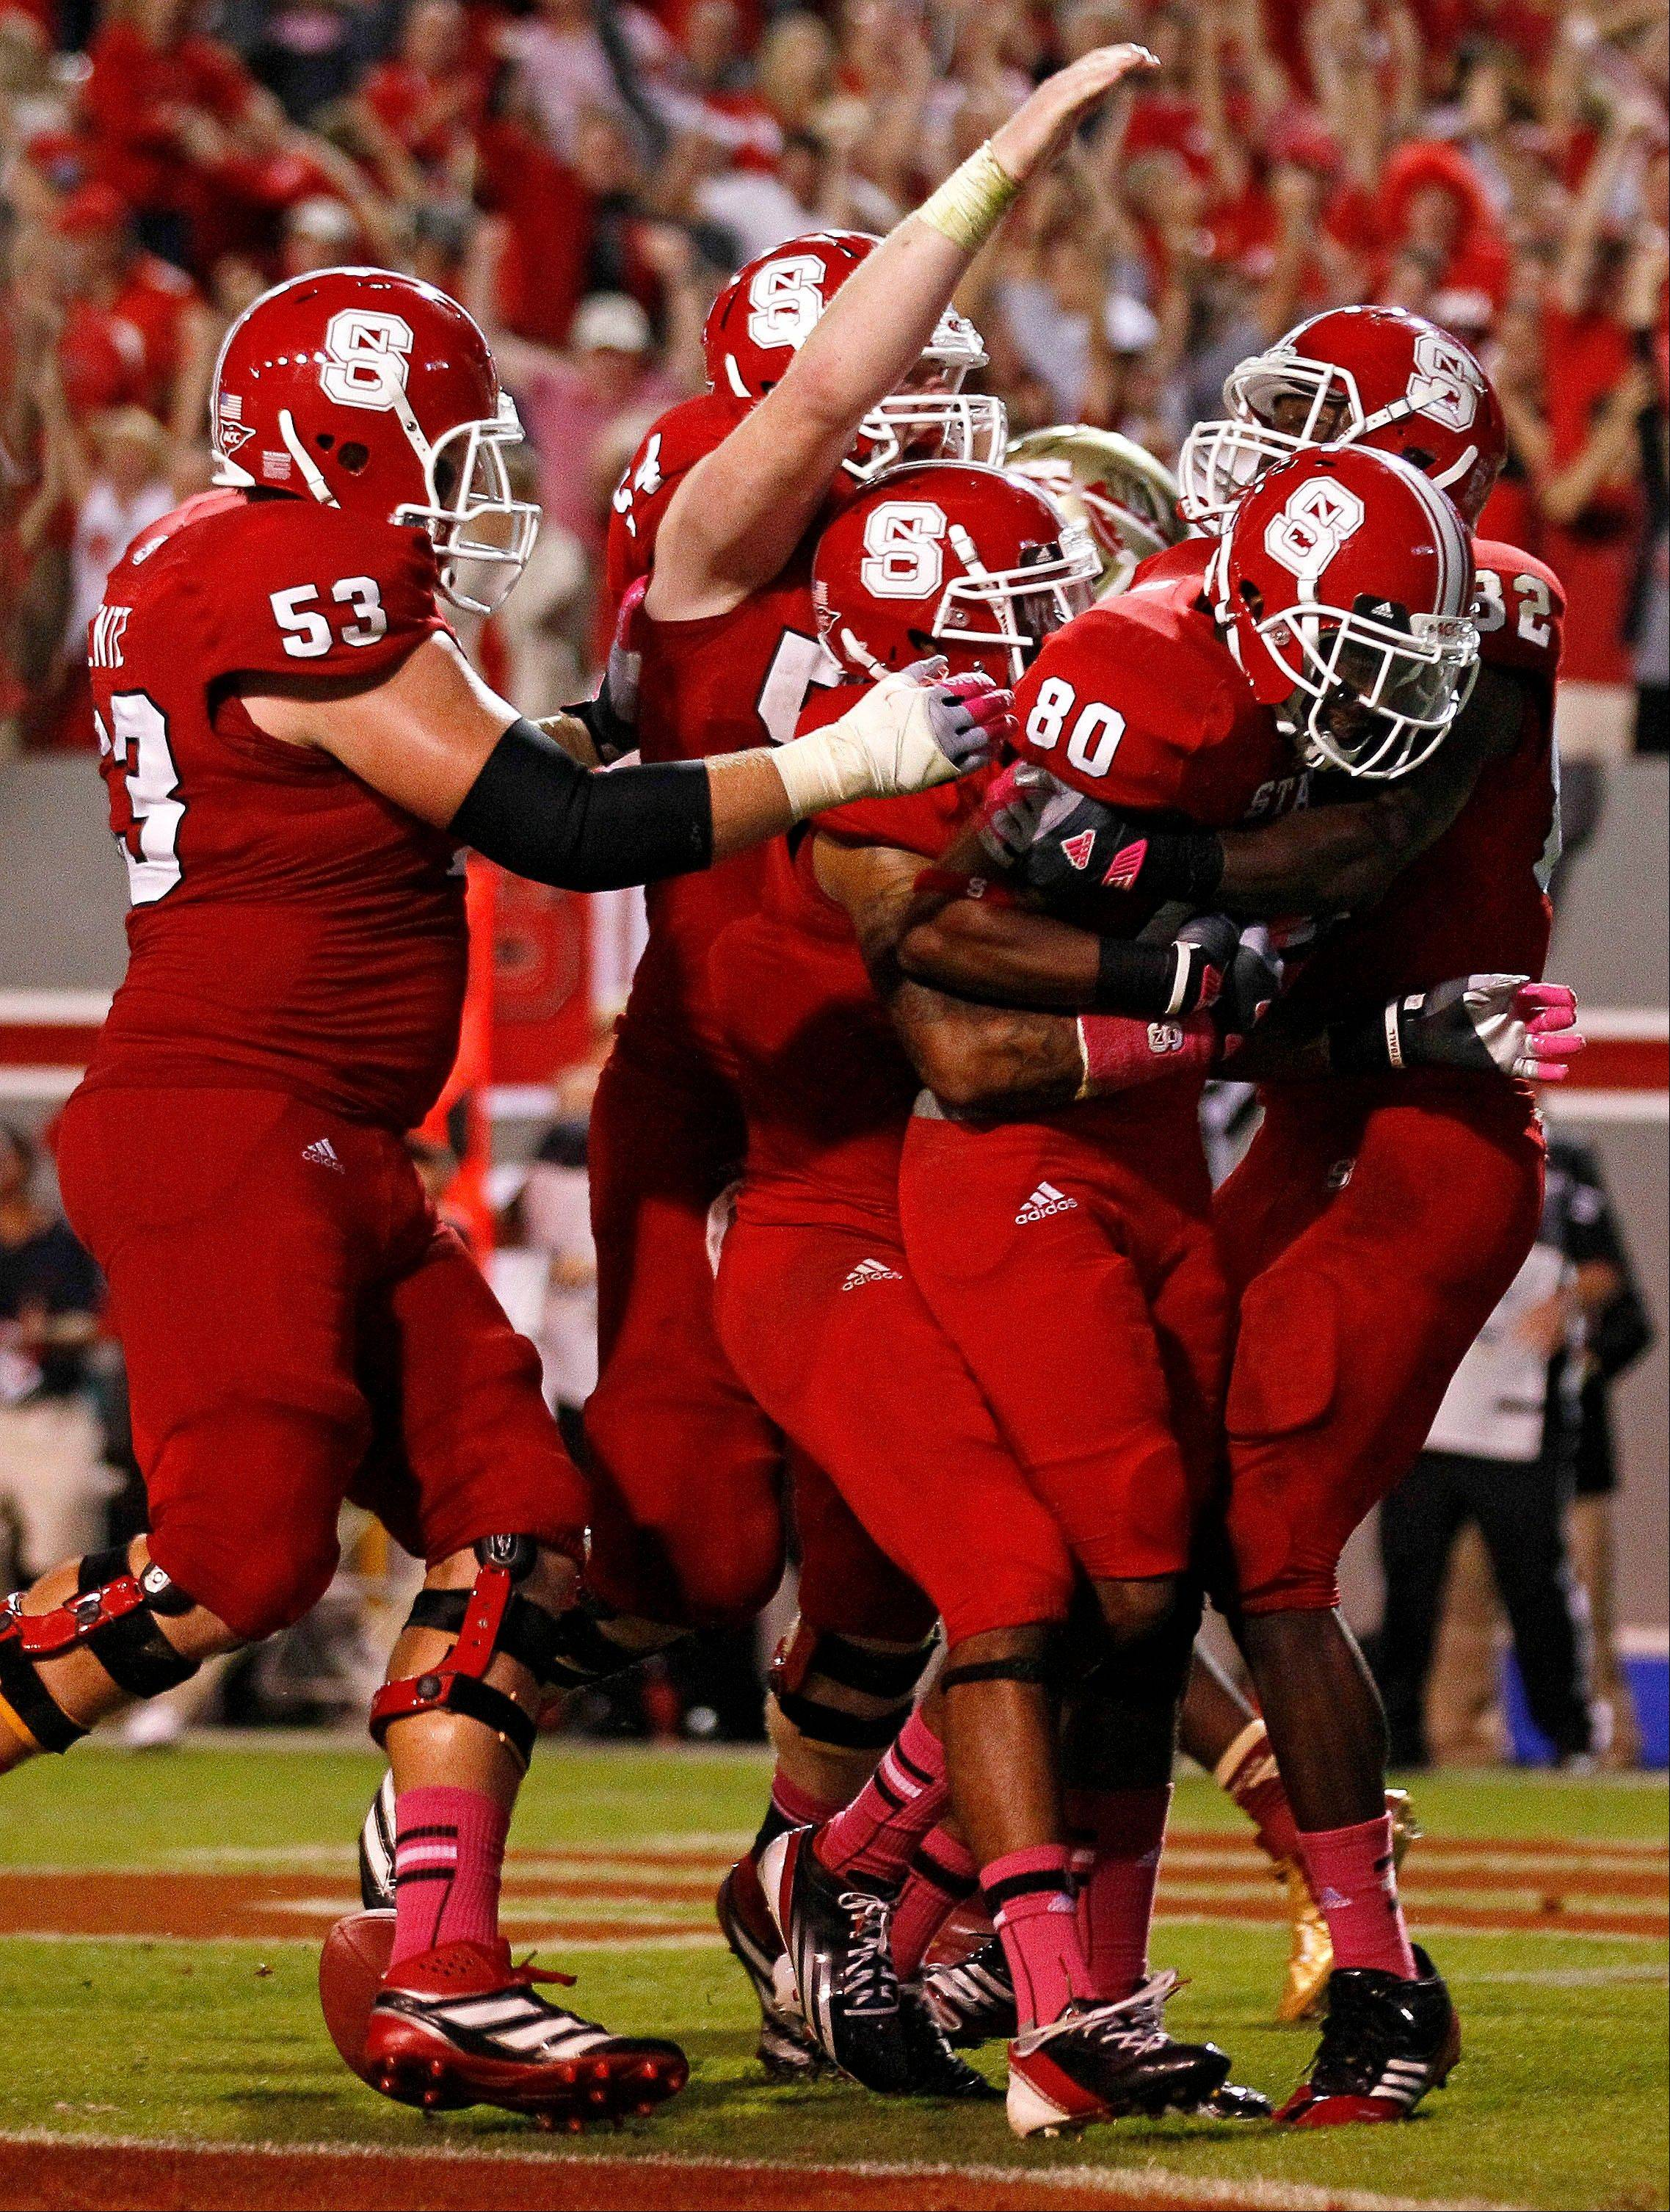 North Carolina State�s Bryan Underwood (80) is congratulated by teammates after his touchdown to tie the game late in the second half Saturday against Florida State in Raleigh, N.C.